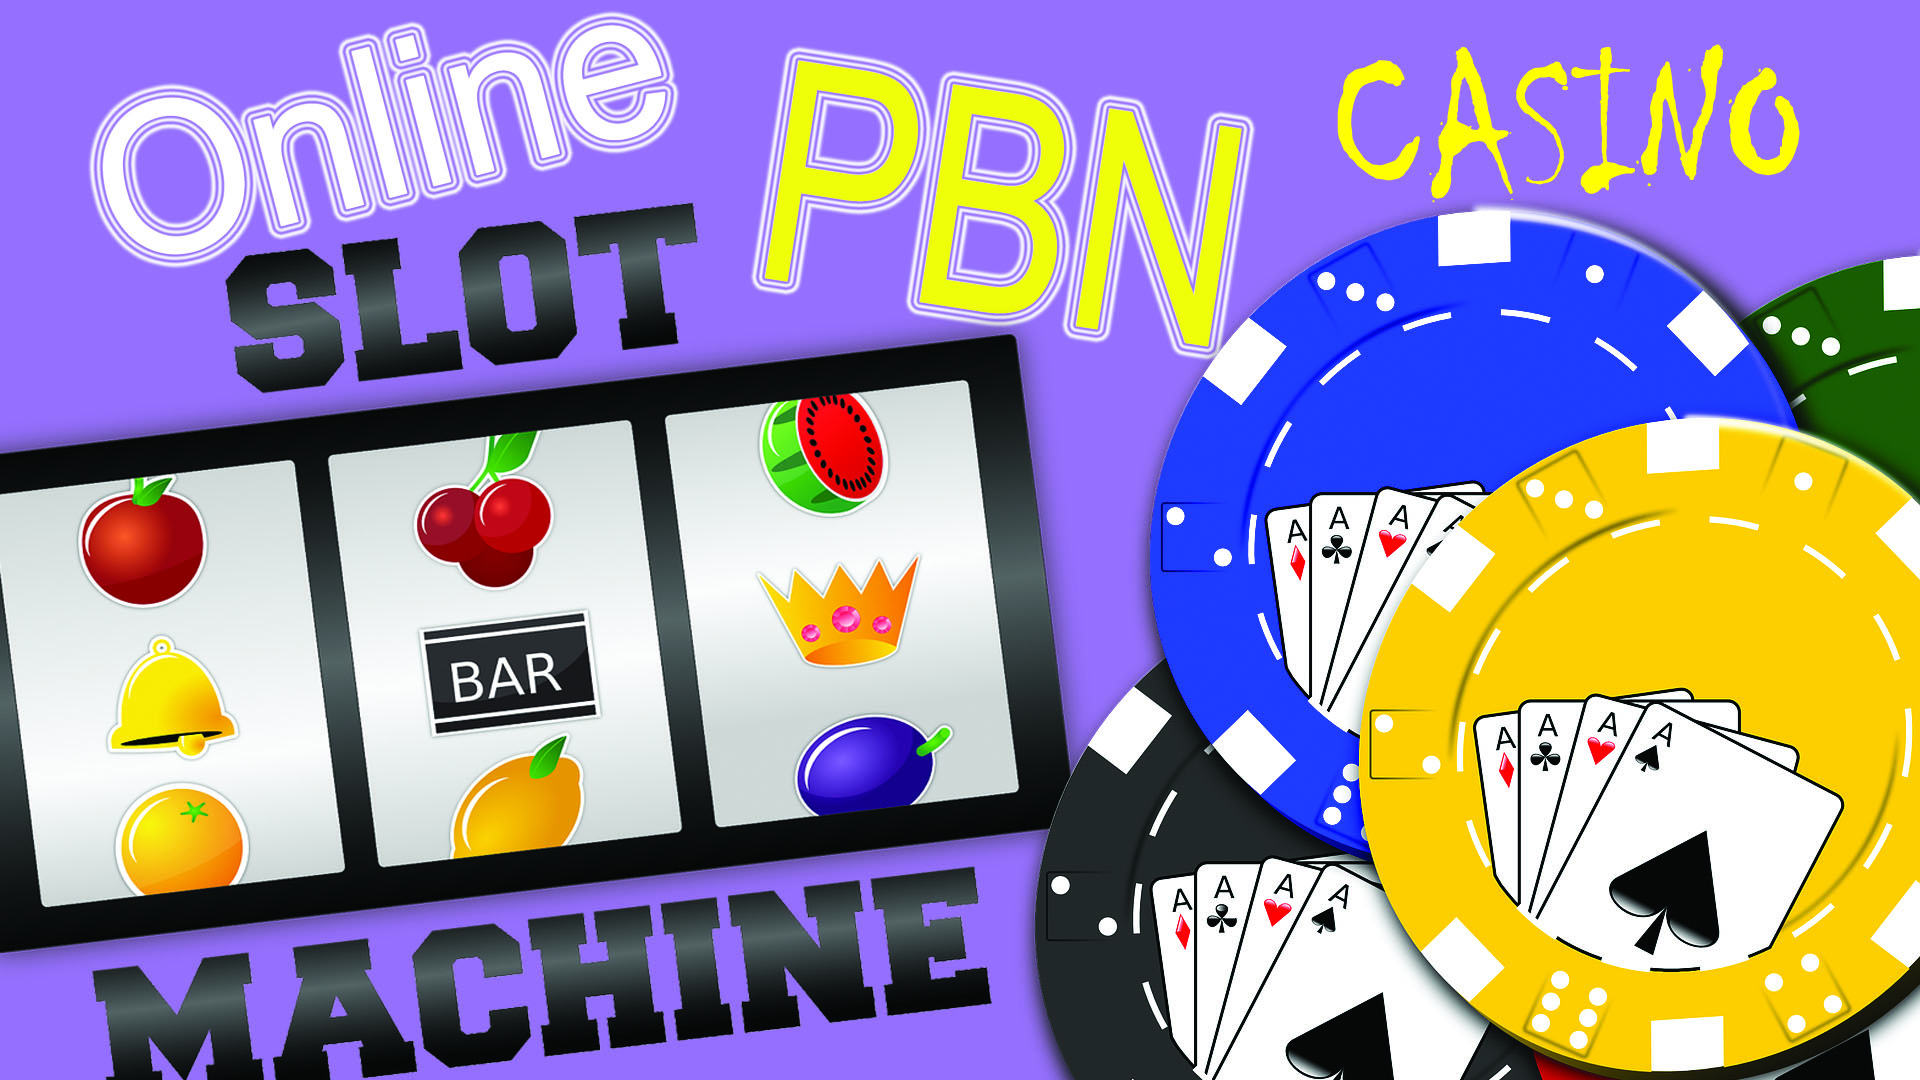 PBN- 100 HIGH QUALITY permanent,  JUDI CASINO POKER GAMBLING backlinks- Extremely powerful package